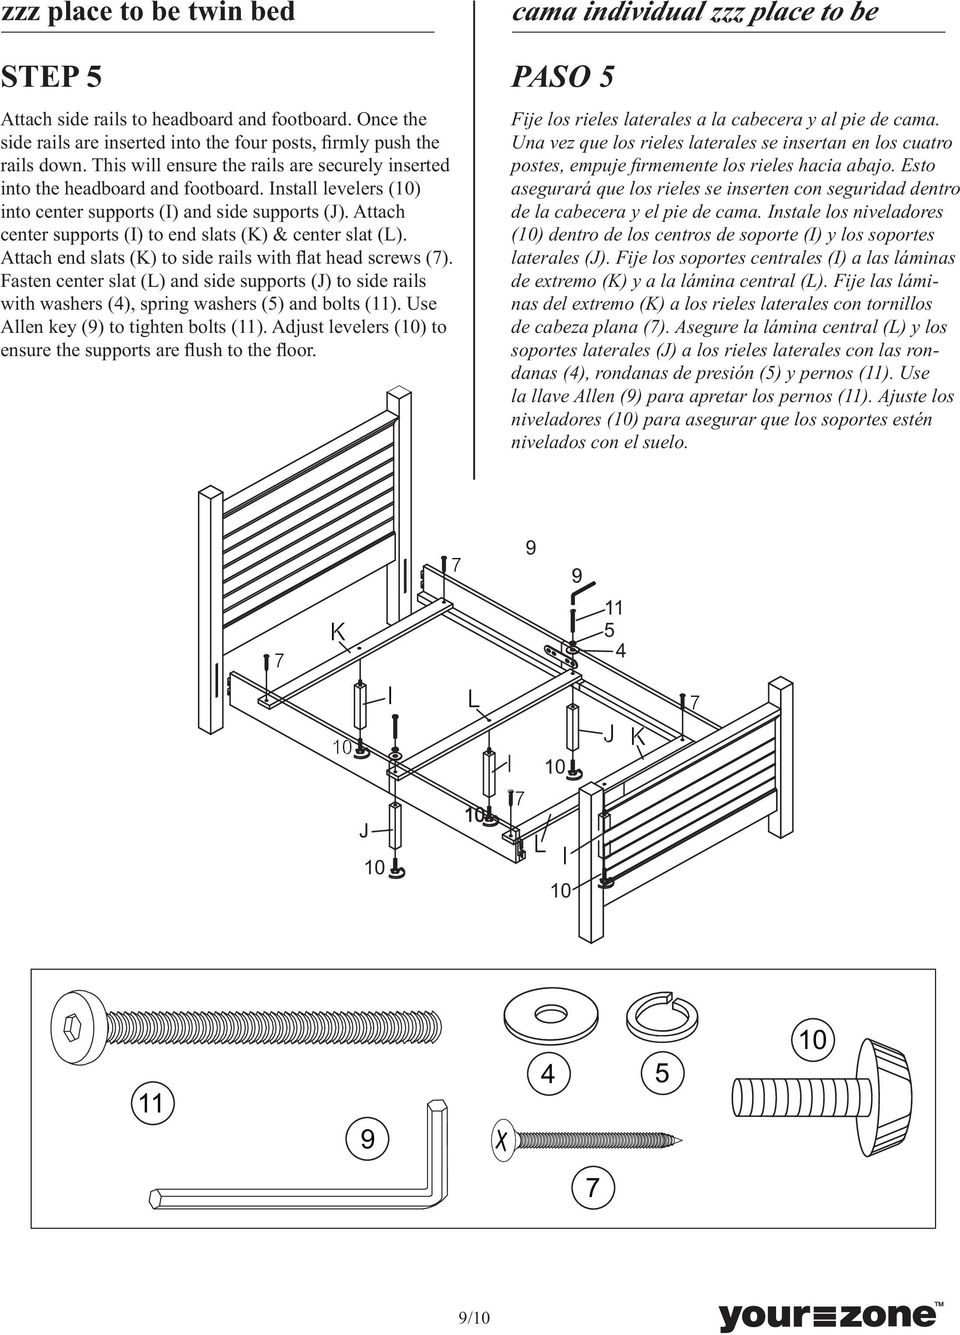 Attach center supports (I) to end slats (K) & center slat (L). Attach end slats (K) to side rails with flat head screws (7).